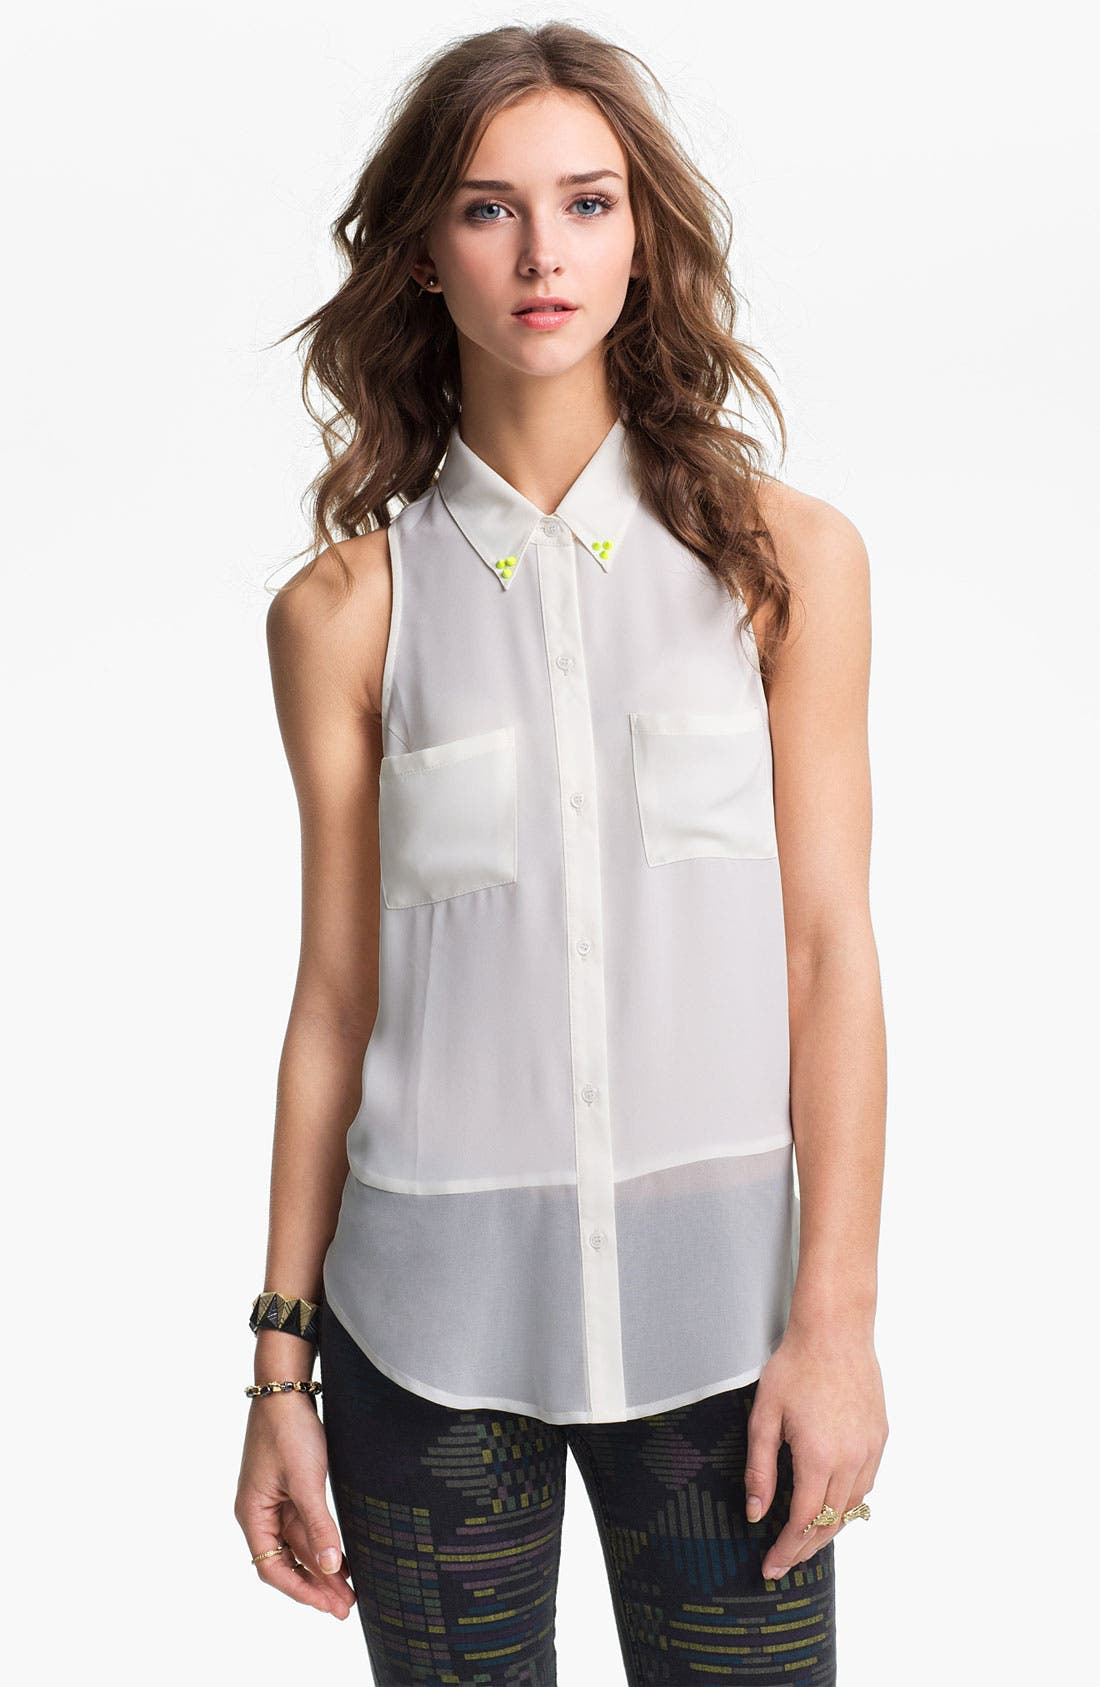 Alternate Image 1 Selected - Lush Neon Stud Collar Sleeveless Shirt (Juniors)